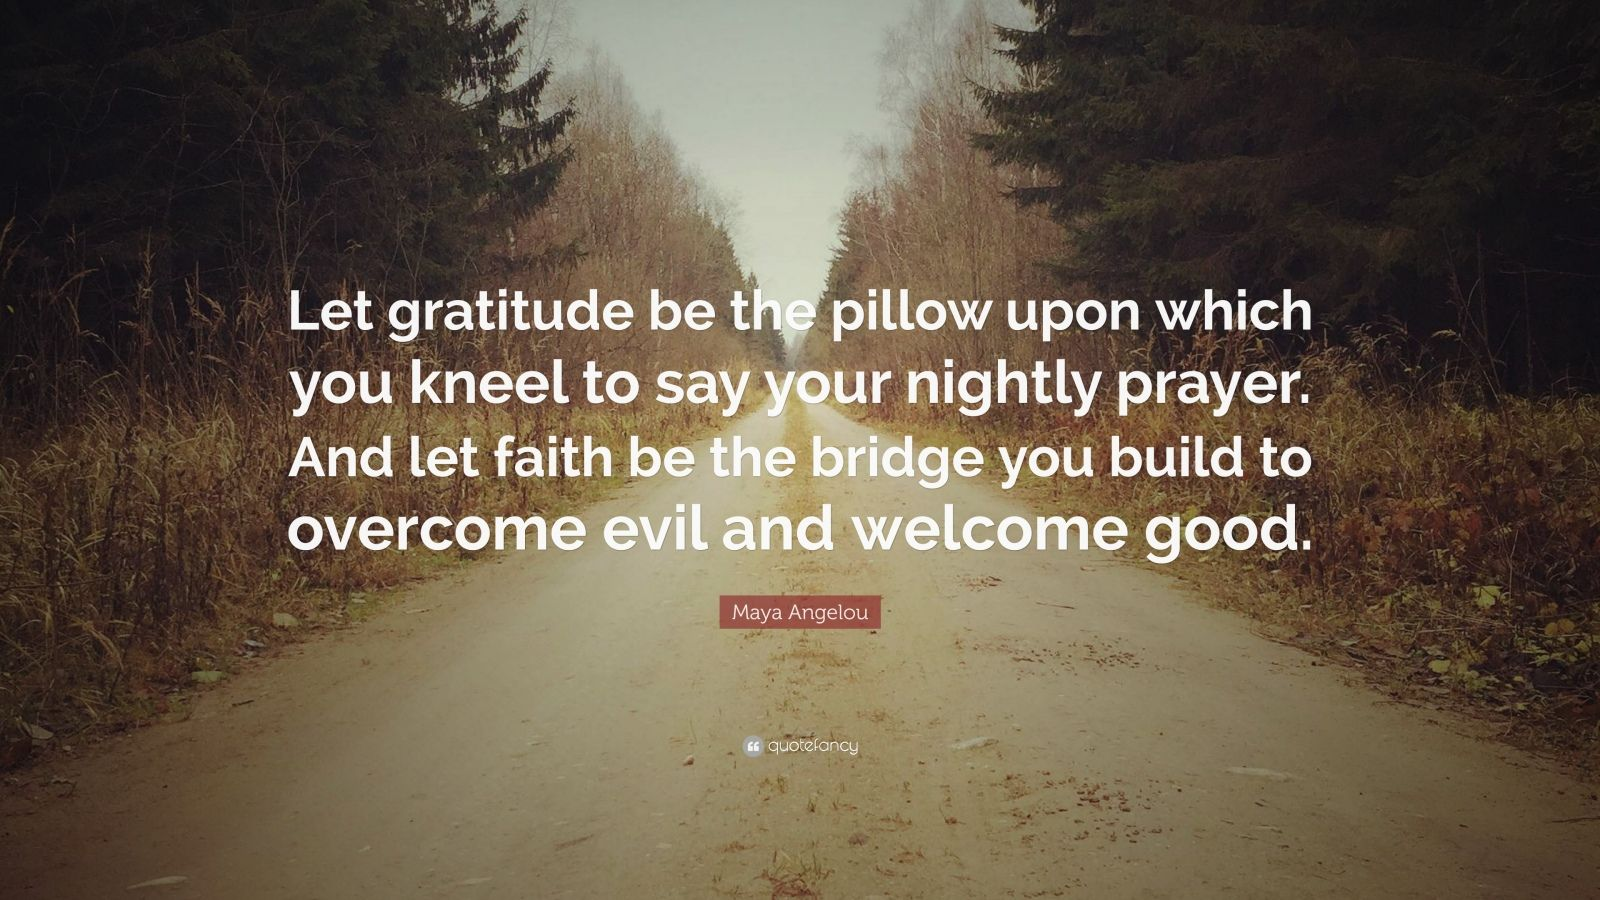 """Maya Angelou Quote: """"Let gratitude be the pillow upon which you kneel to say your nightly prayer. And let faith be the bridge you build to overcome evil and welcome good."""""""